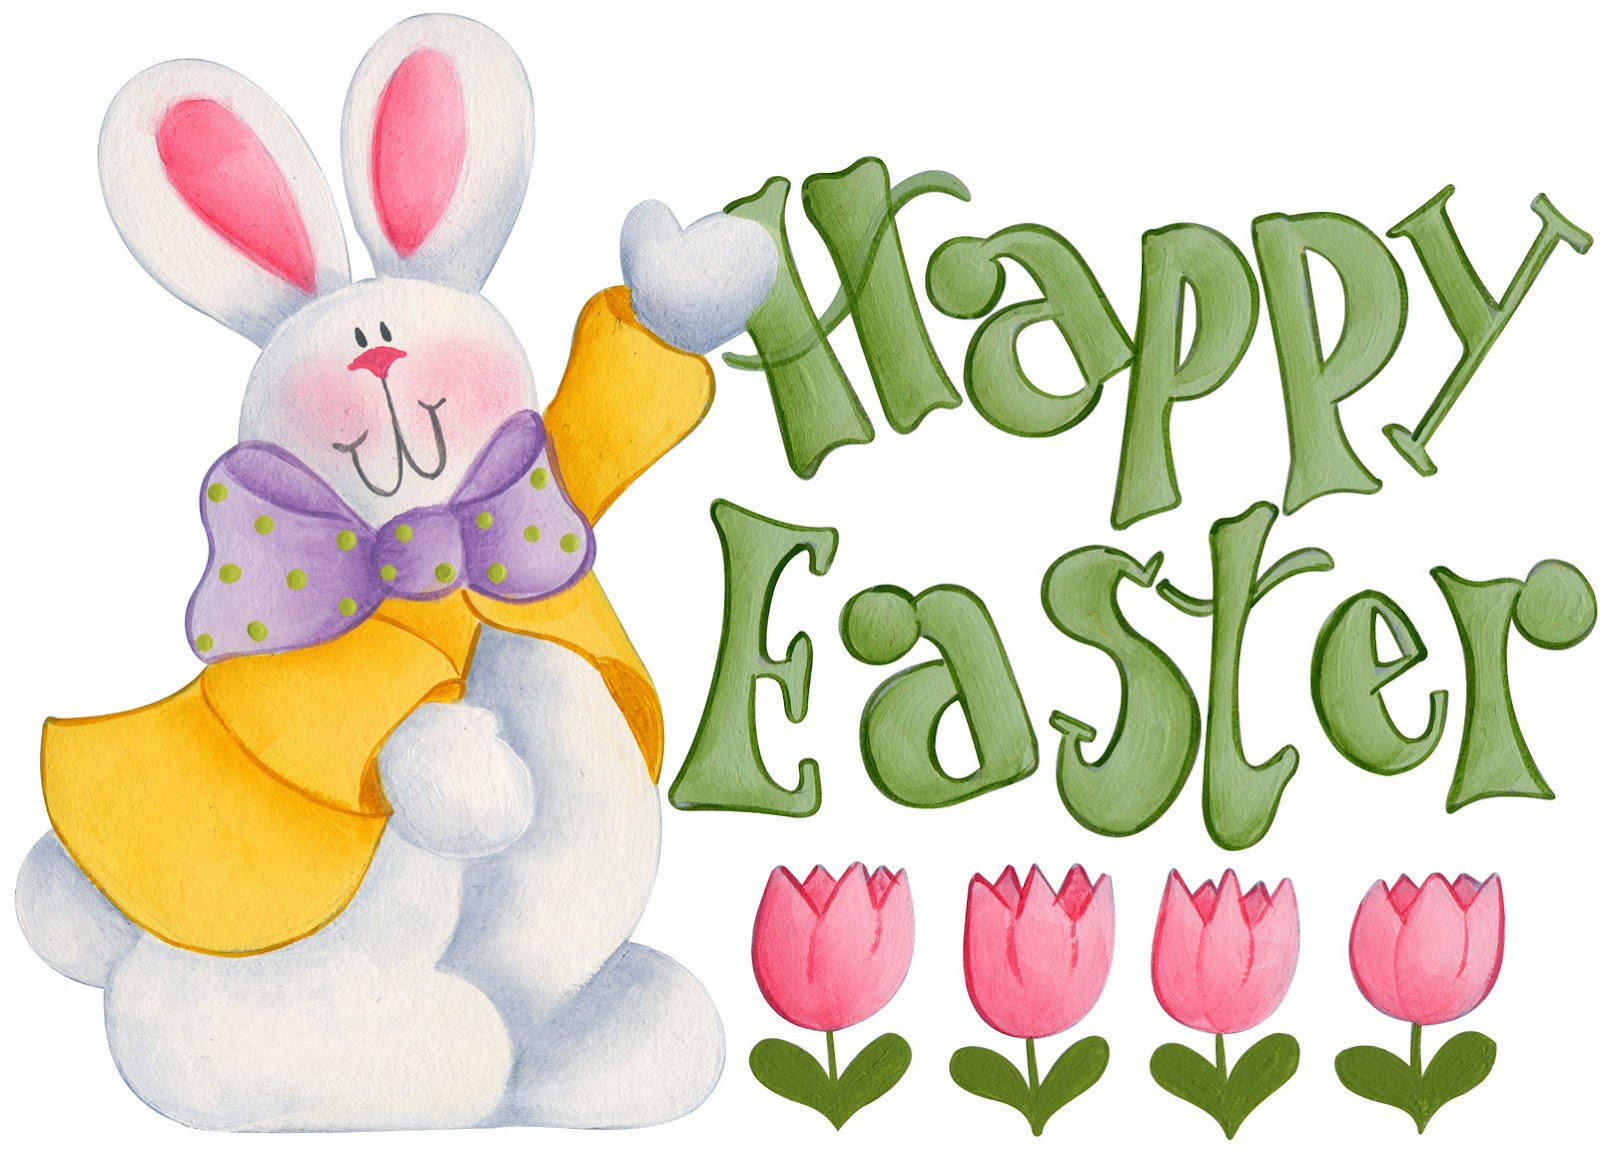 Free Easter Wallpaper Backgrounds Downloads